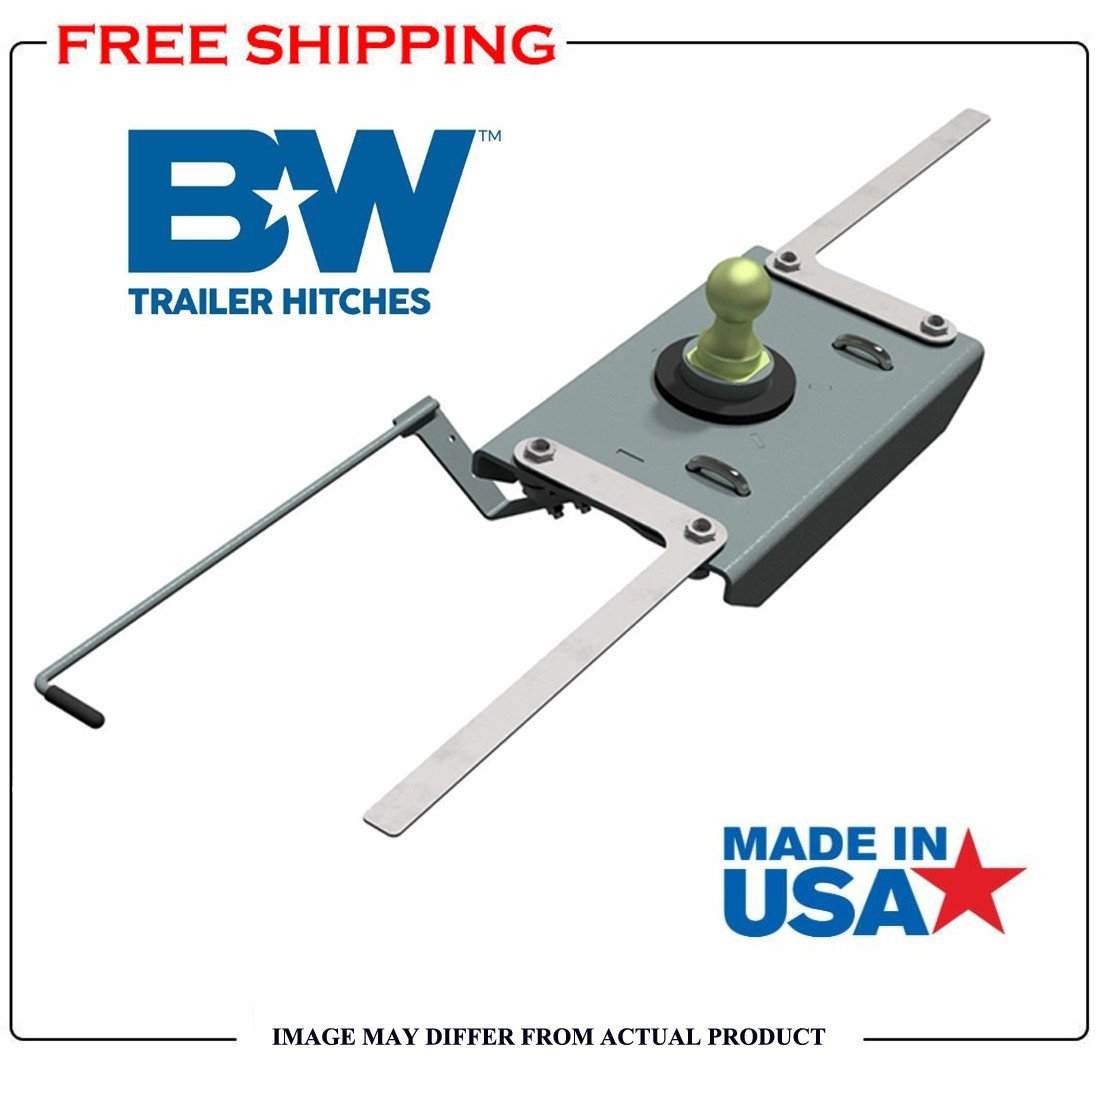 B&W Trailer Hitches Turnoverball 1384 2013-2018 RAM 2500 Trucks Gooseneck Hitch by B&W Trailer Hitches